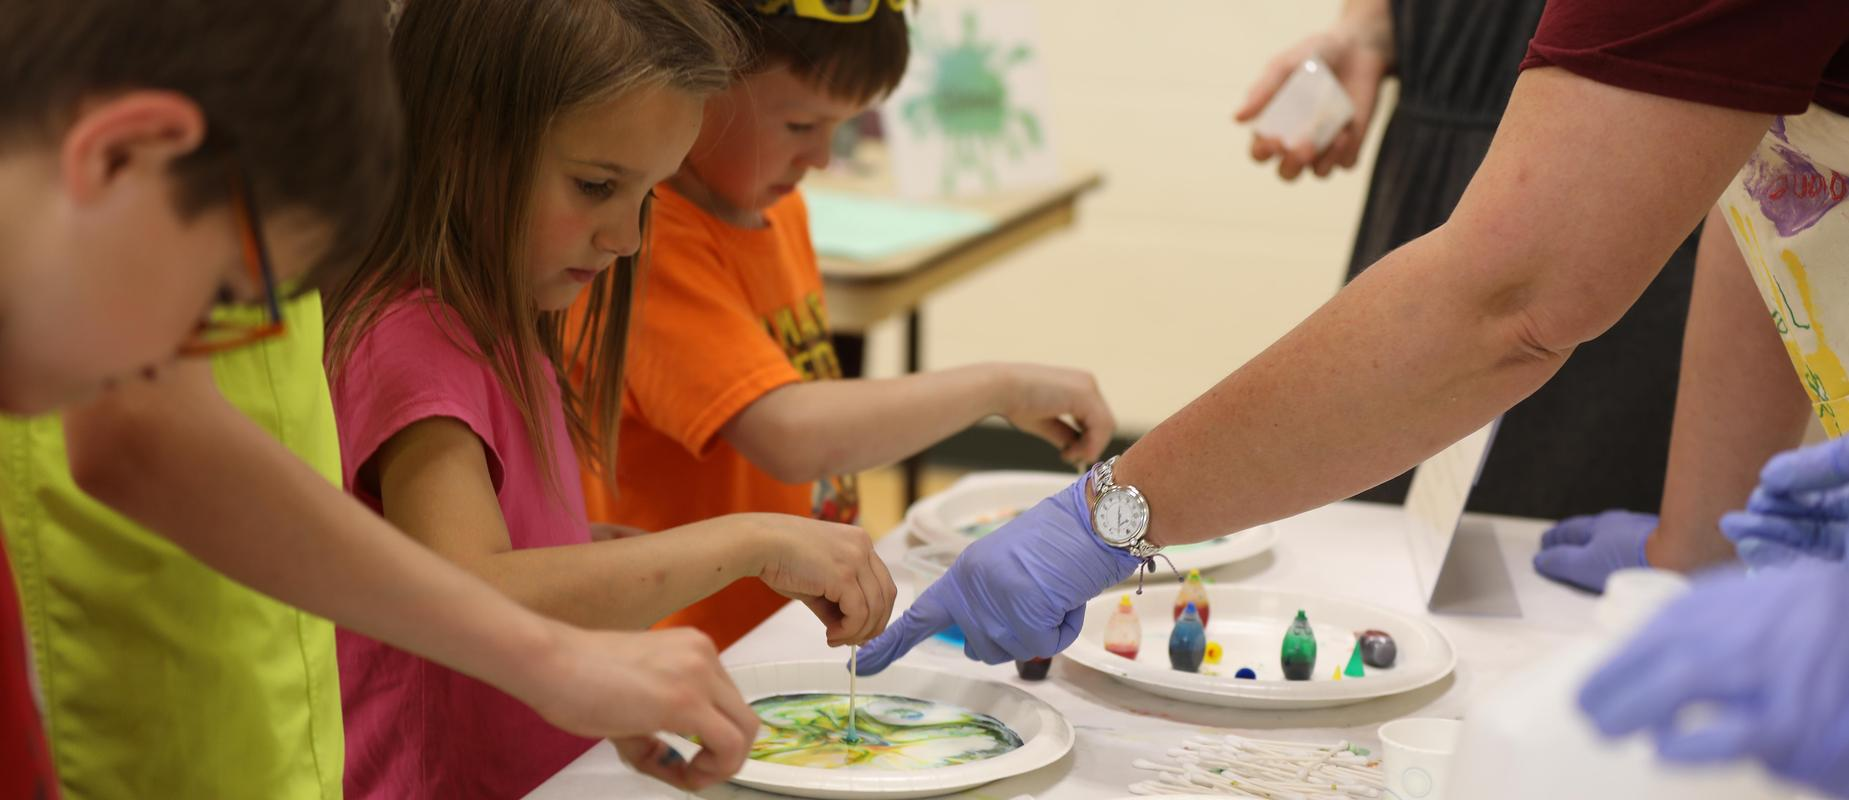 making swirly artwork with food coloring